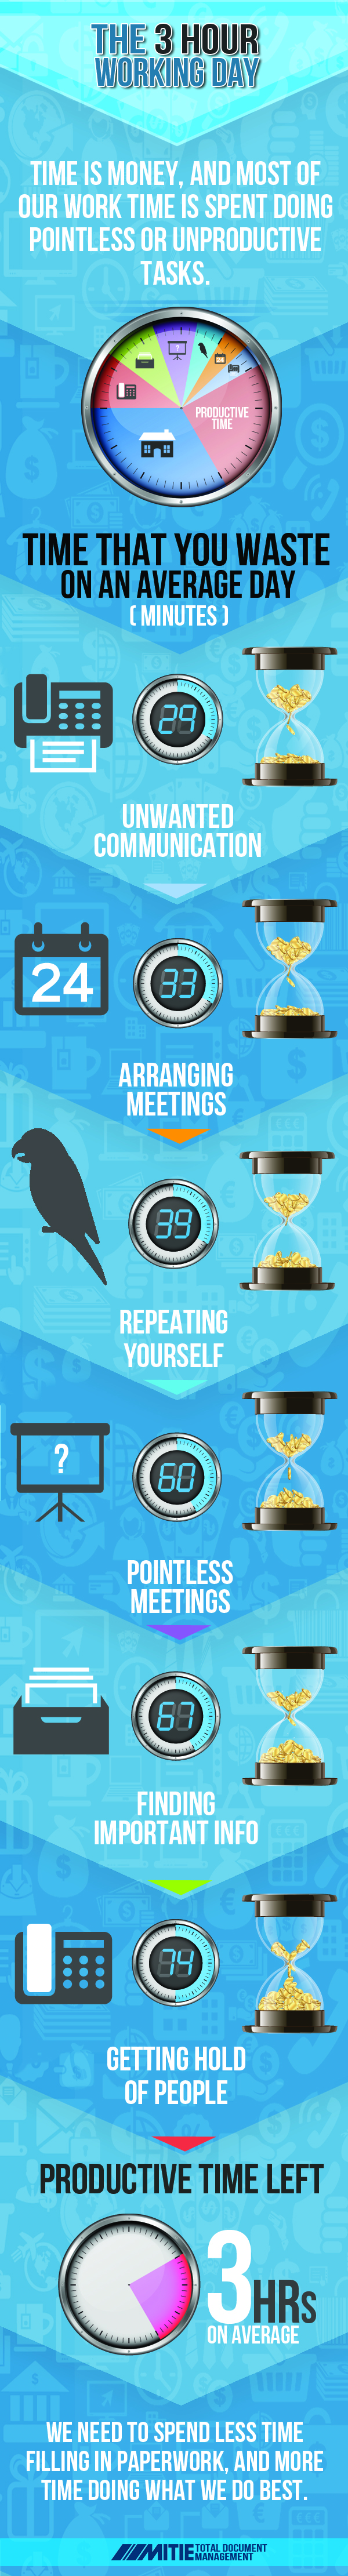 [Infographic]- The 3 hour Working Day